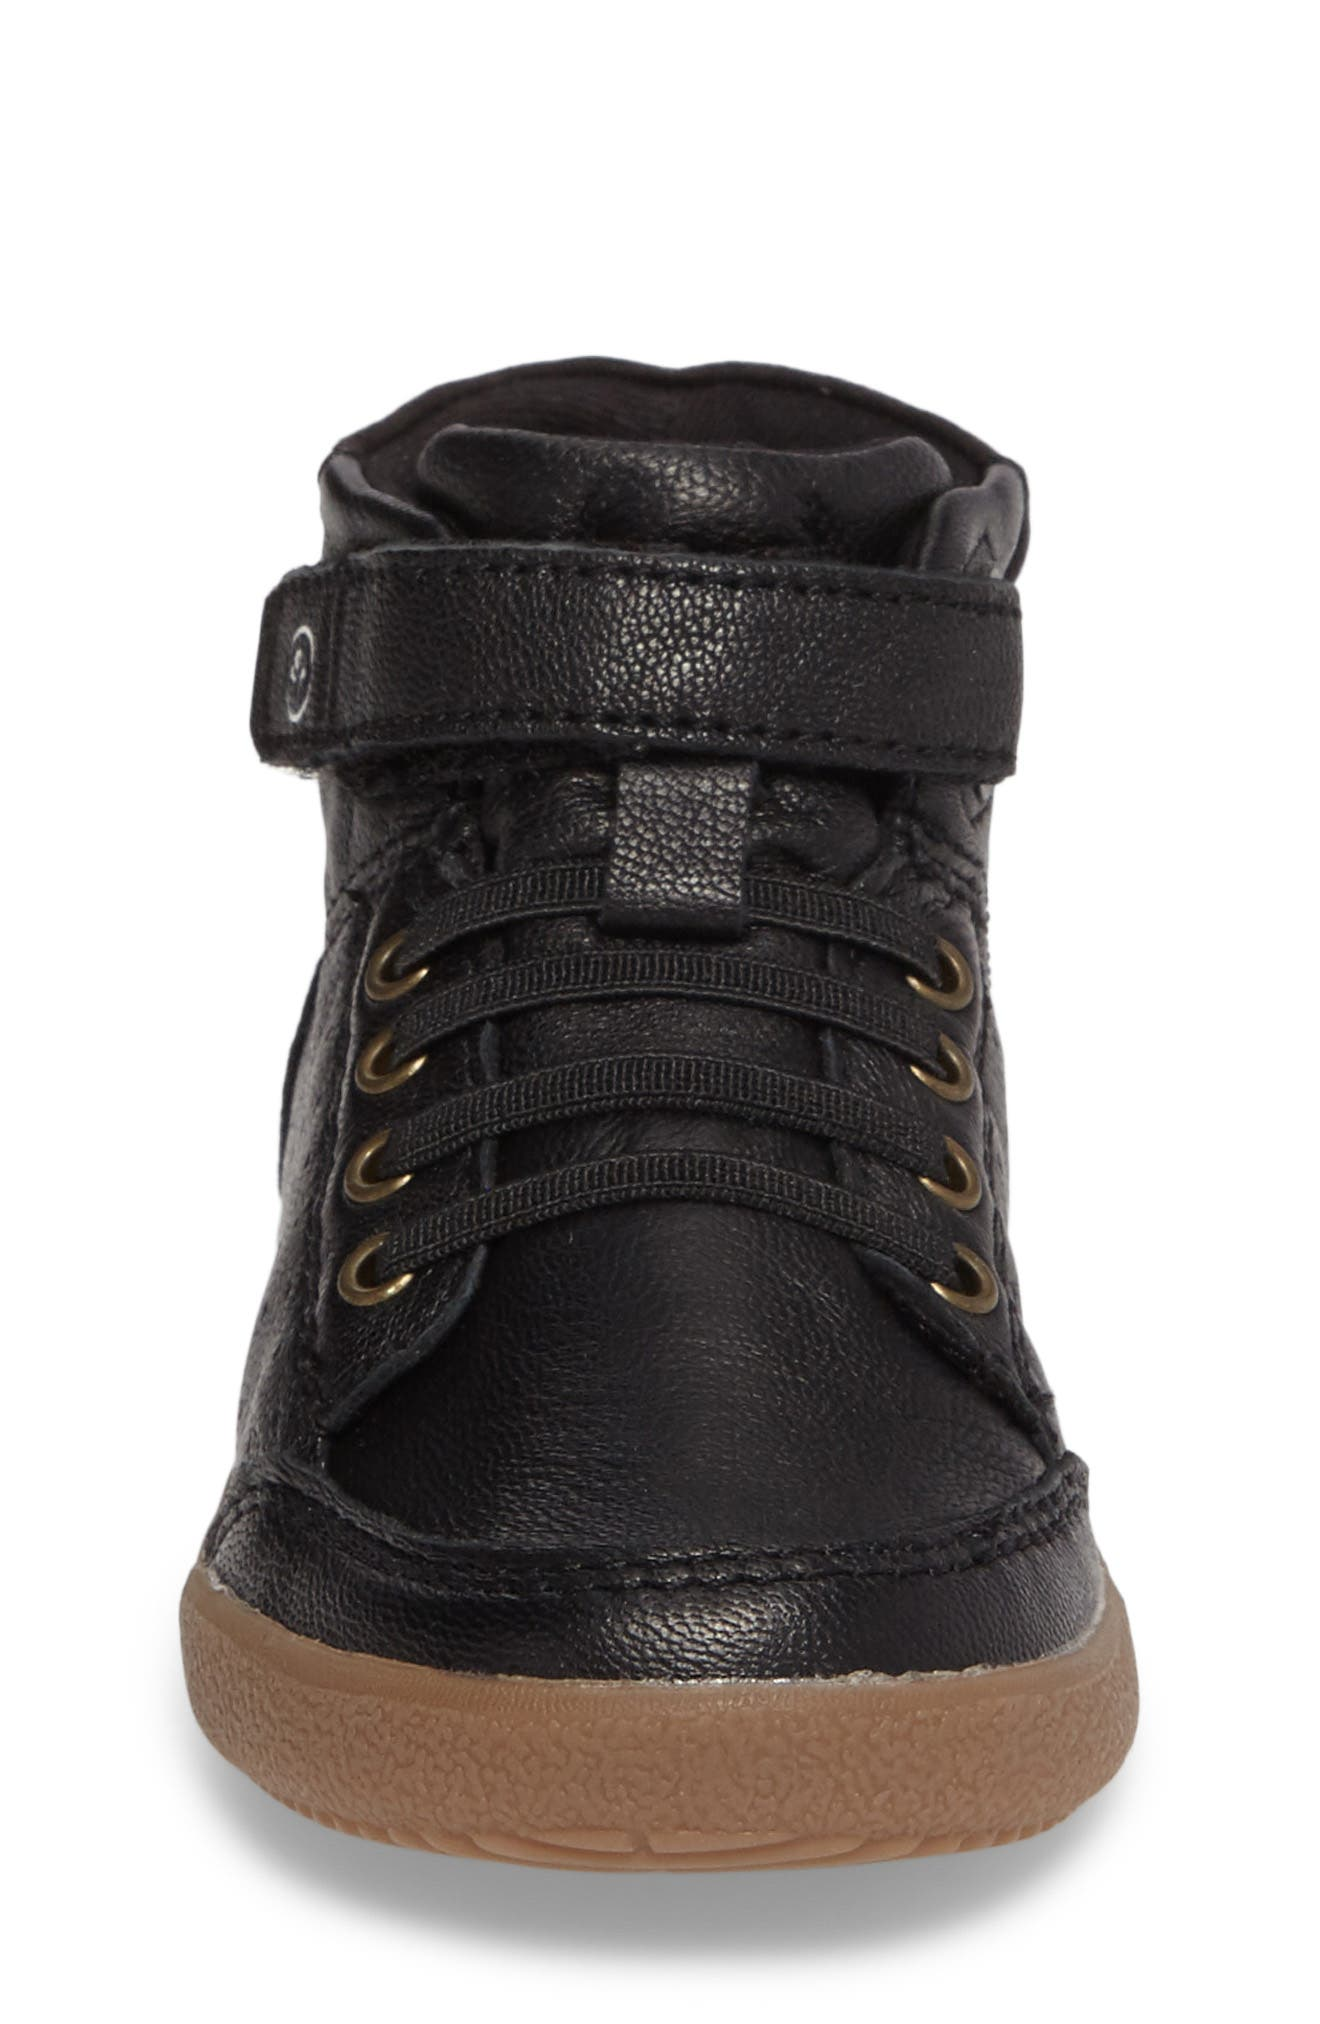 Stone High Top Sneaker,                             Alternate thumbnail 4, color,                             001